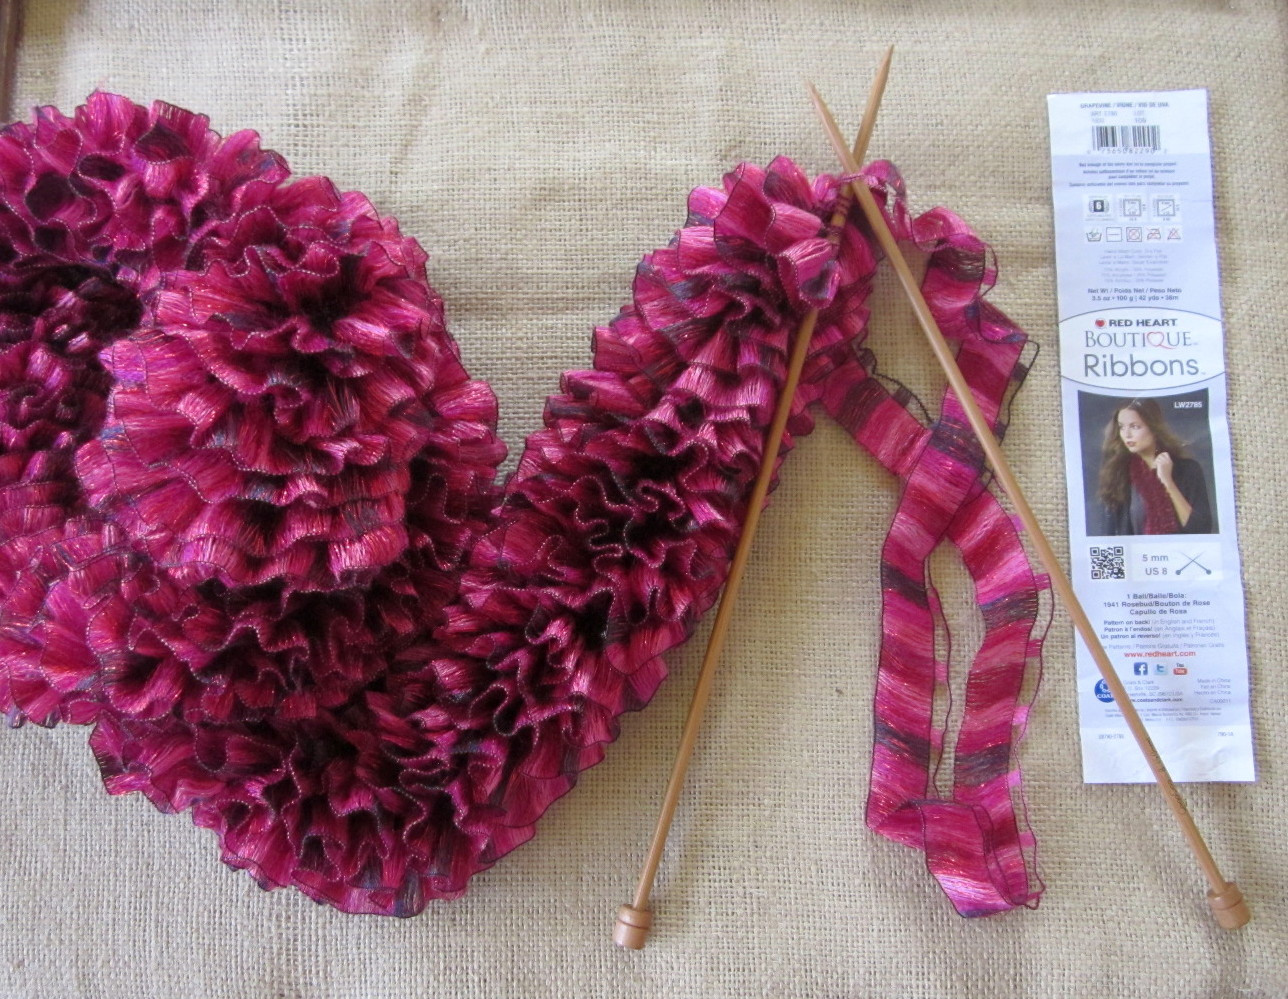 Lovely Wendylynn S Paper Whims Red Heart Boutique Ribbons Yarn Scarf Yarn Scarf Of Attractive 49 Photos Yarn Scarf